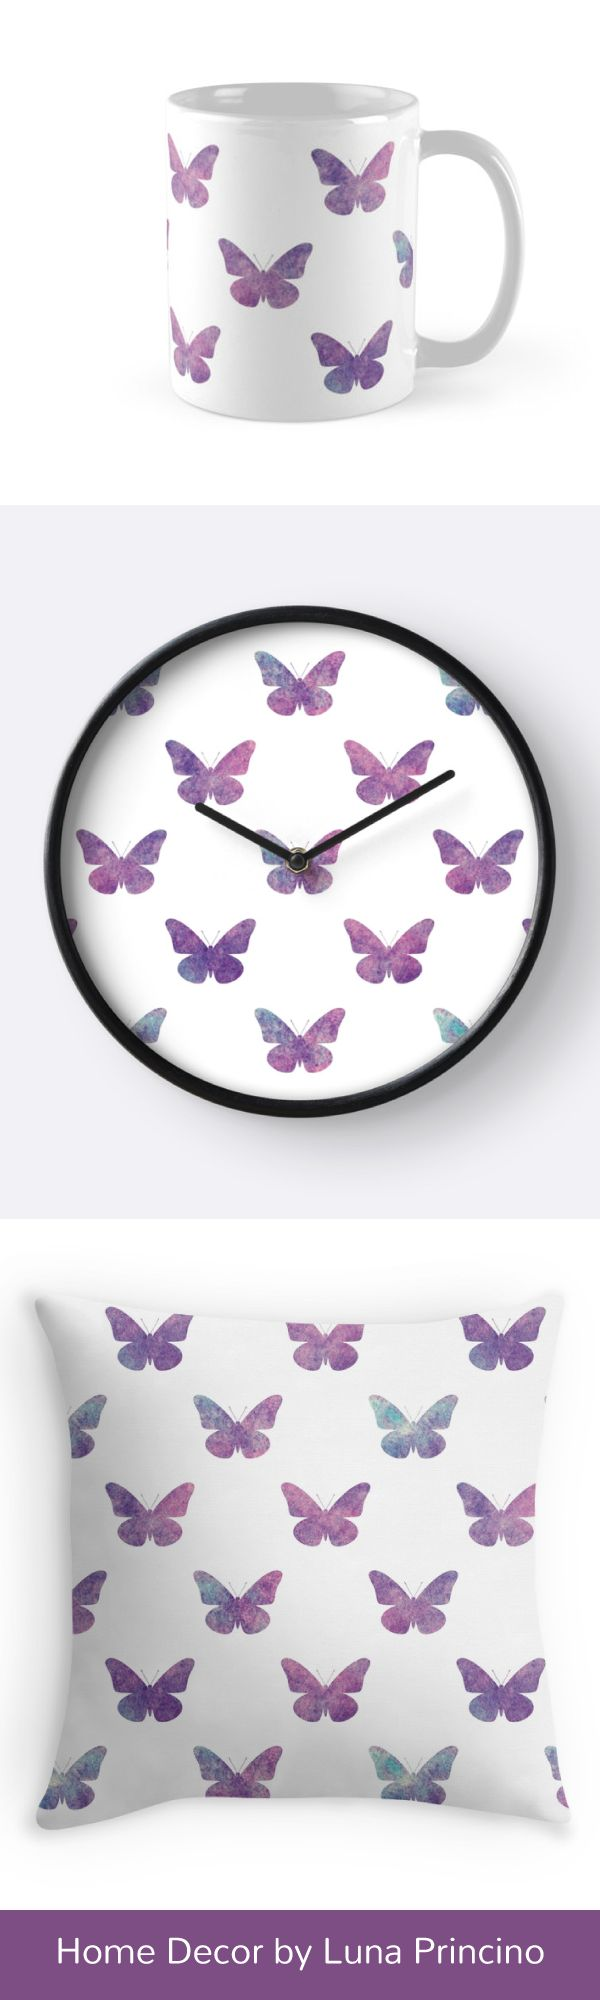 Home decor with beautiful purple watercolor butterflies pattern by Luna Princino. Check it out on Redbubble! #lunaprincino #design #home #decor #throw #pillow #mug #mugs #clocks #gift #idea #butterfly #butterflies #purple #violet #nebula #pretty #dreamy #fantasy #art #graphic #watercolor #print #prints #redbubble #beautiful #girly #pattern #animal #insect #garden #spring #summer #decorative